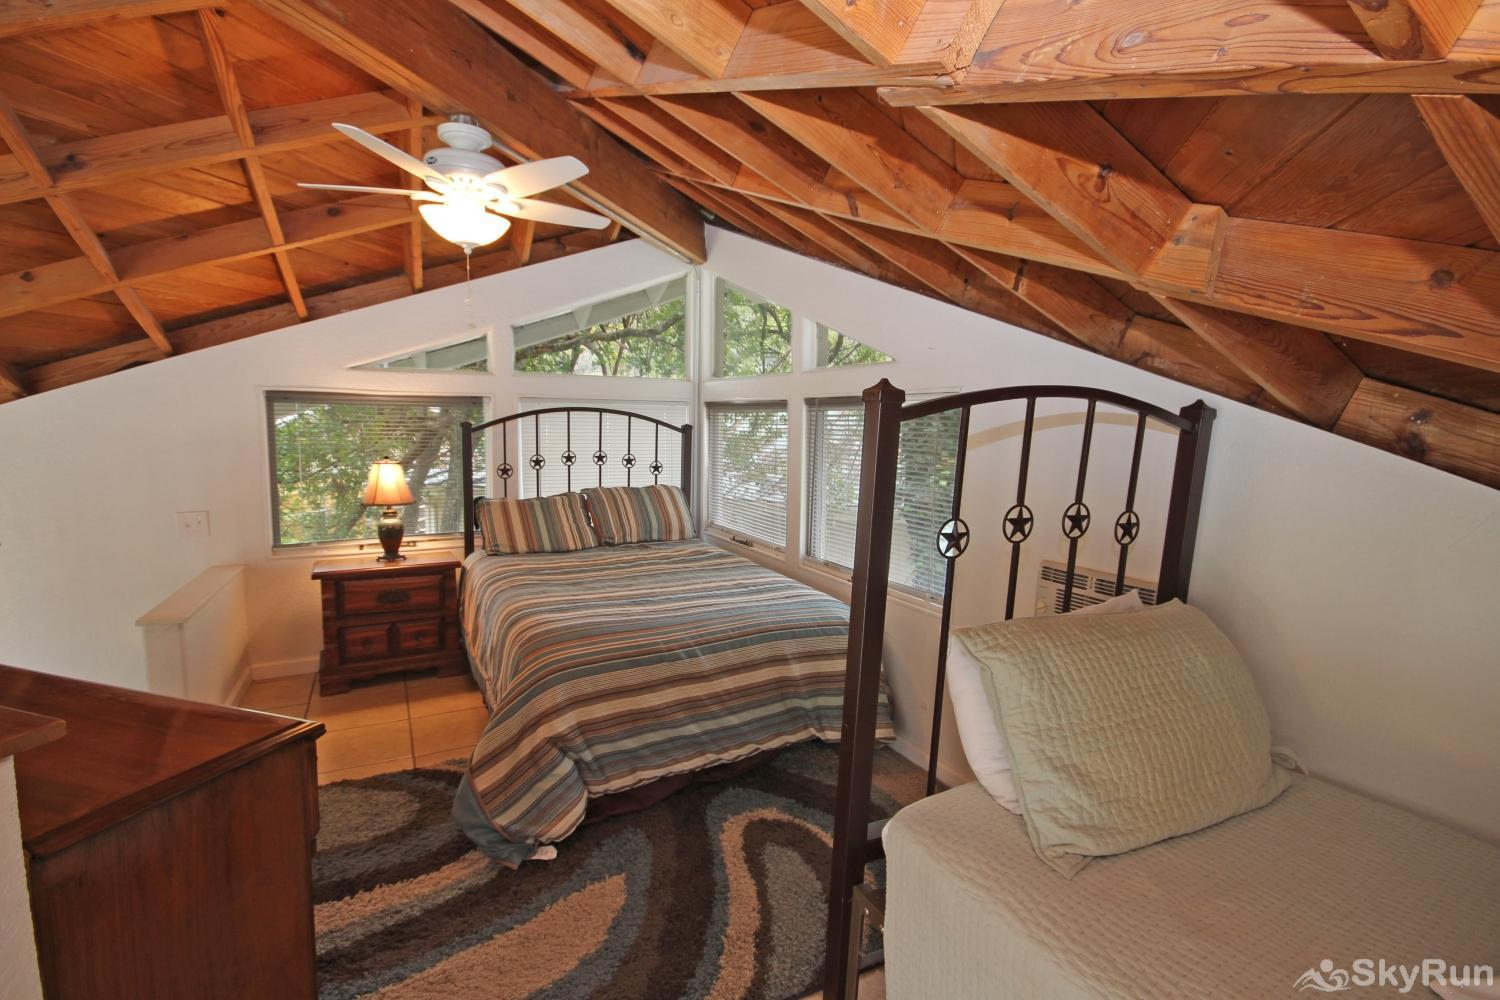 STAR OF TEXAS Cottage with Loft, Available for An Additional Fee